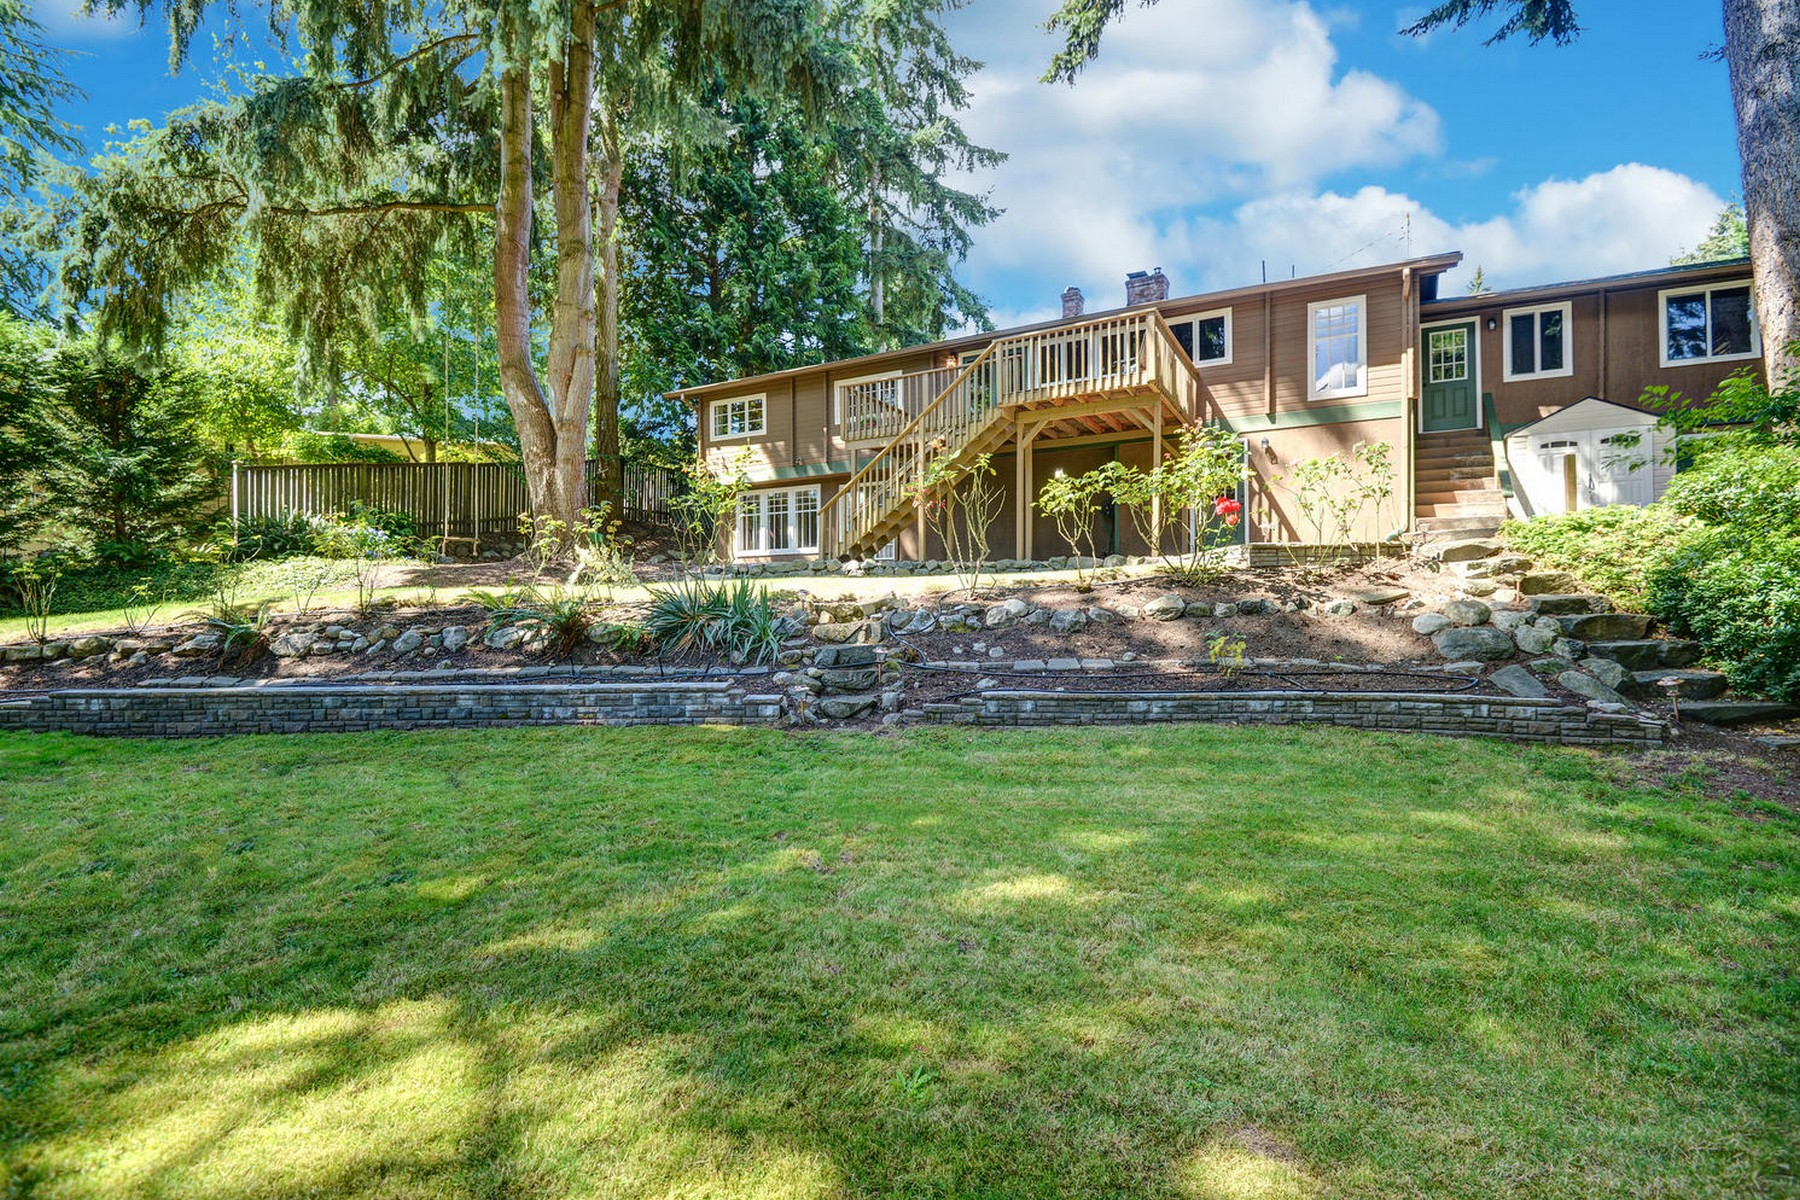 Single Family Home for Sale at Rose Hill Remodel 9330 132nd Ave NE Redmond, Washington 98052 United States